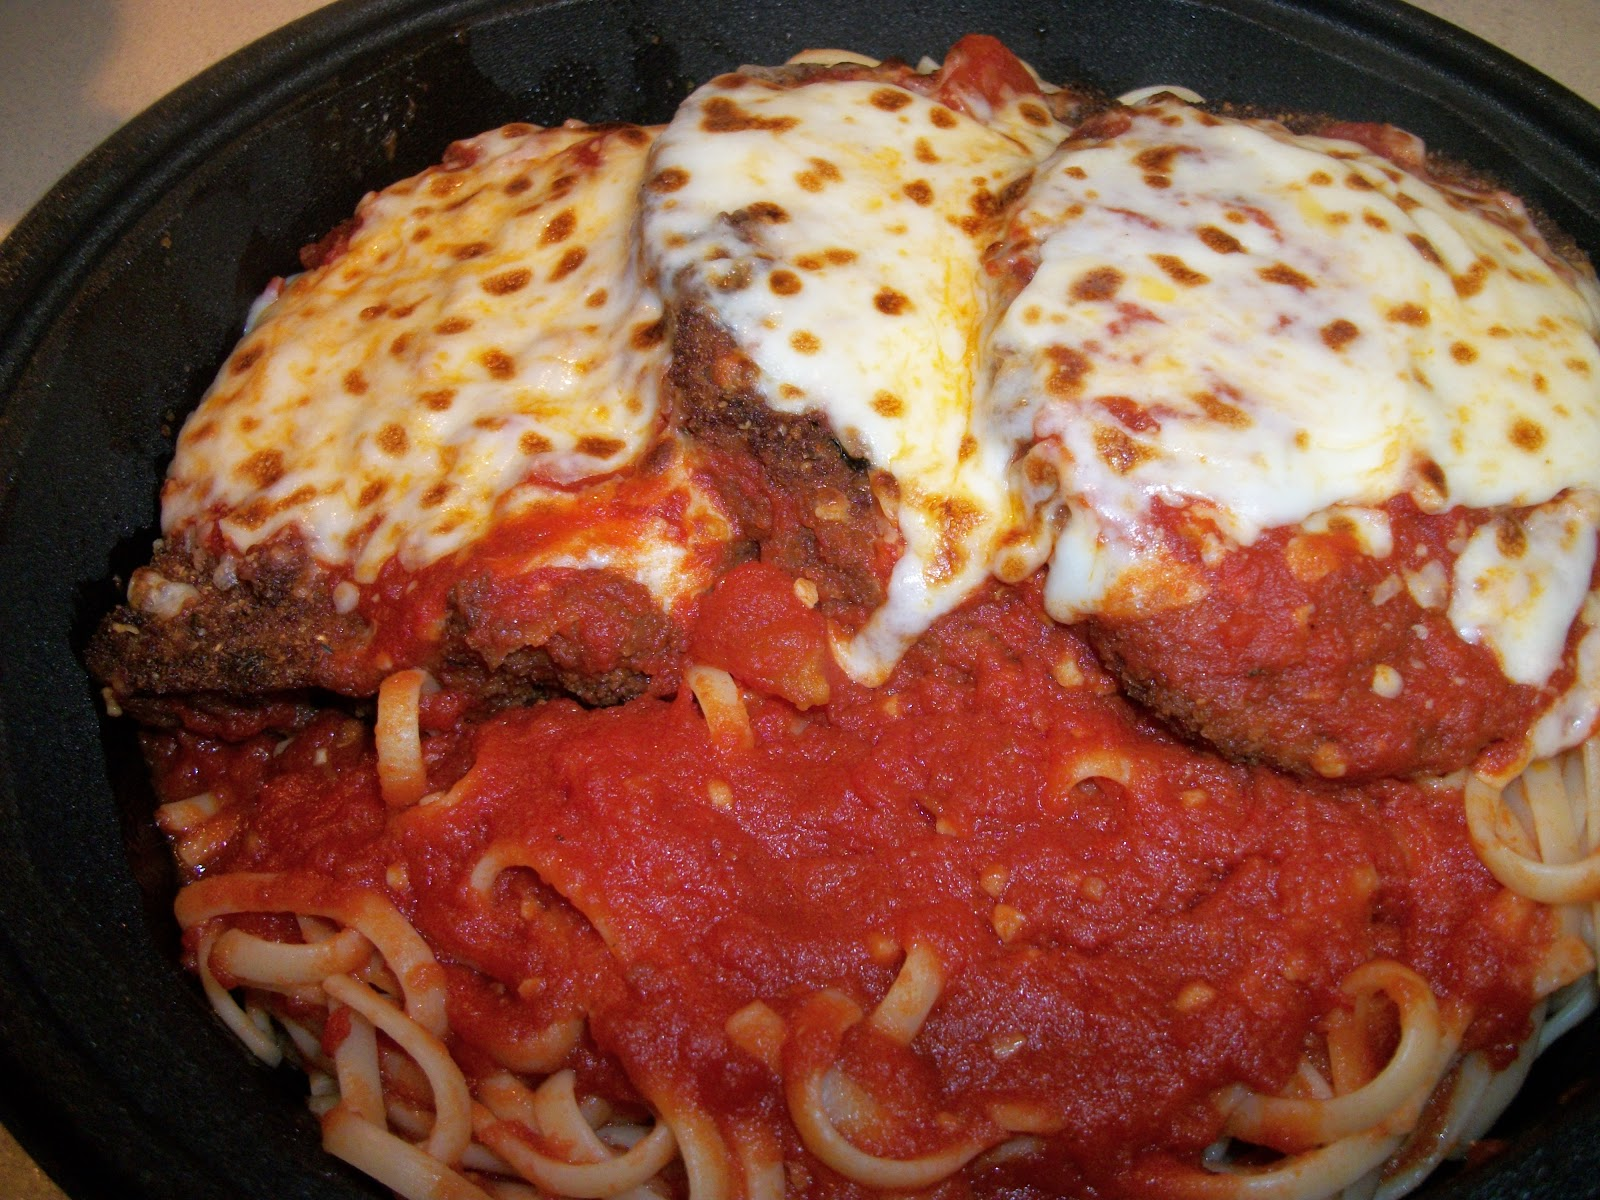 Eggplant Parmesan from Zio's (Personal Photo)